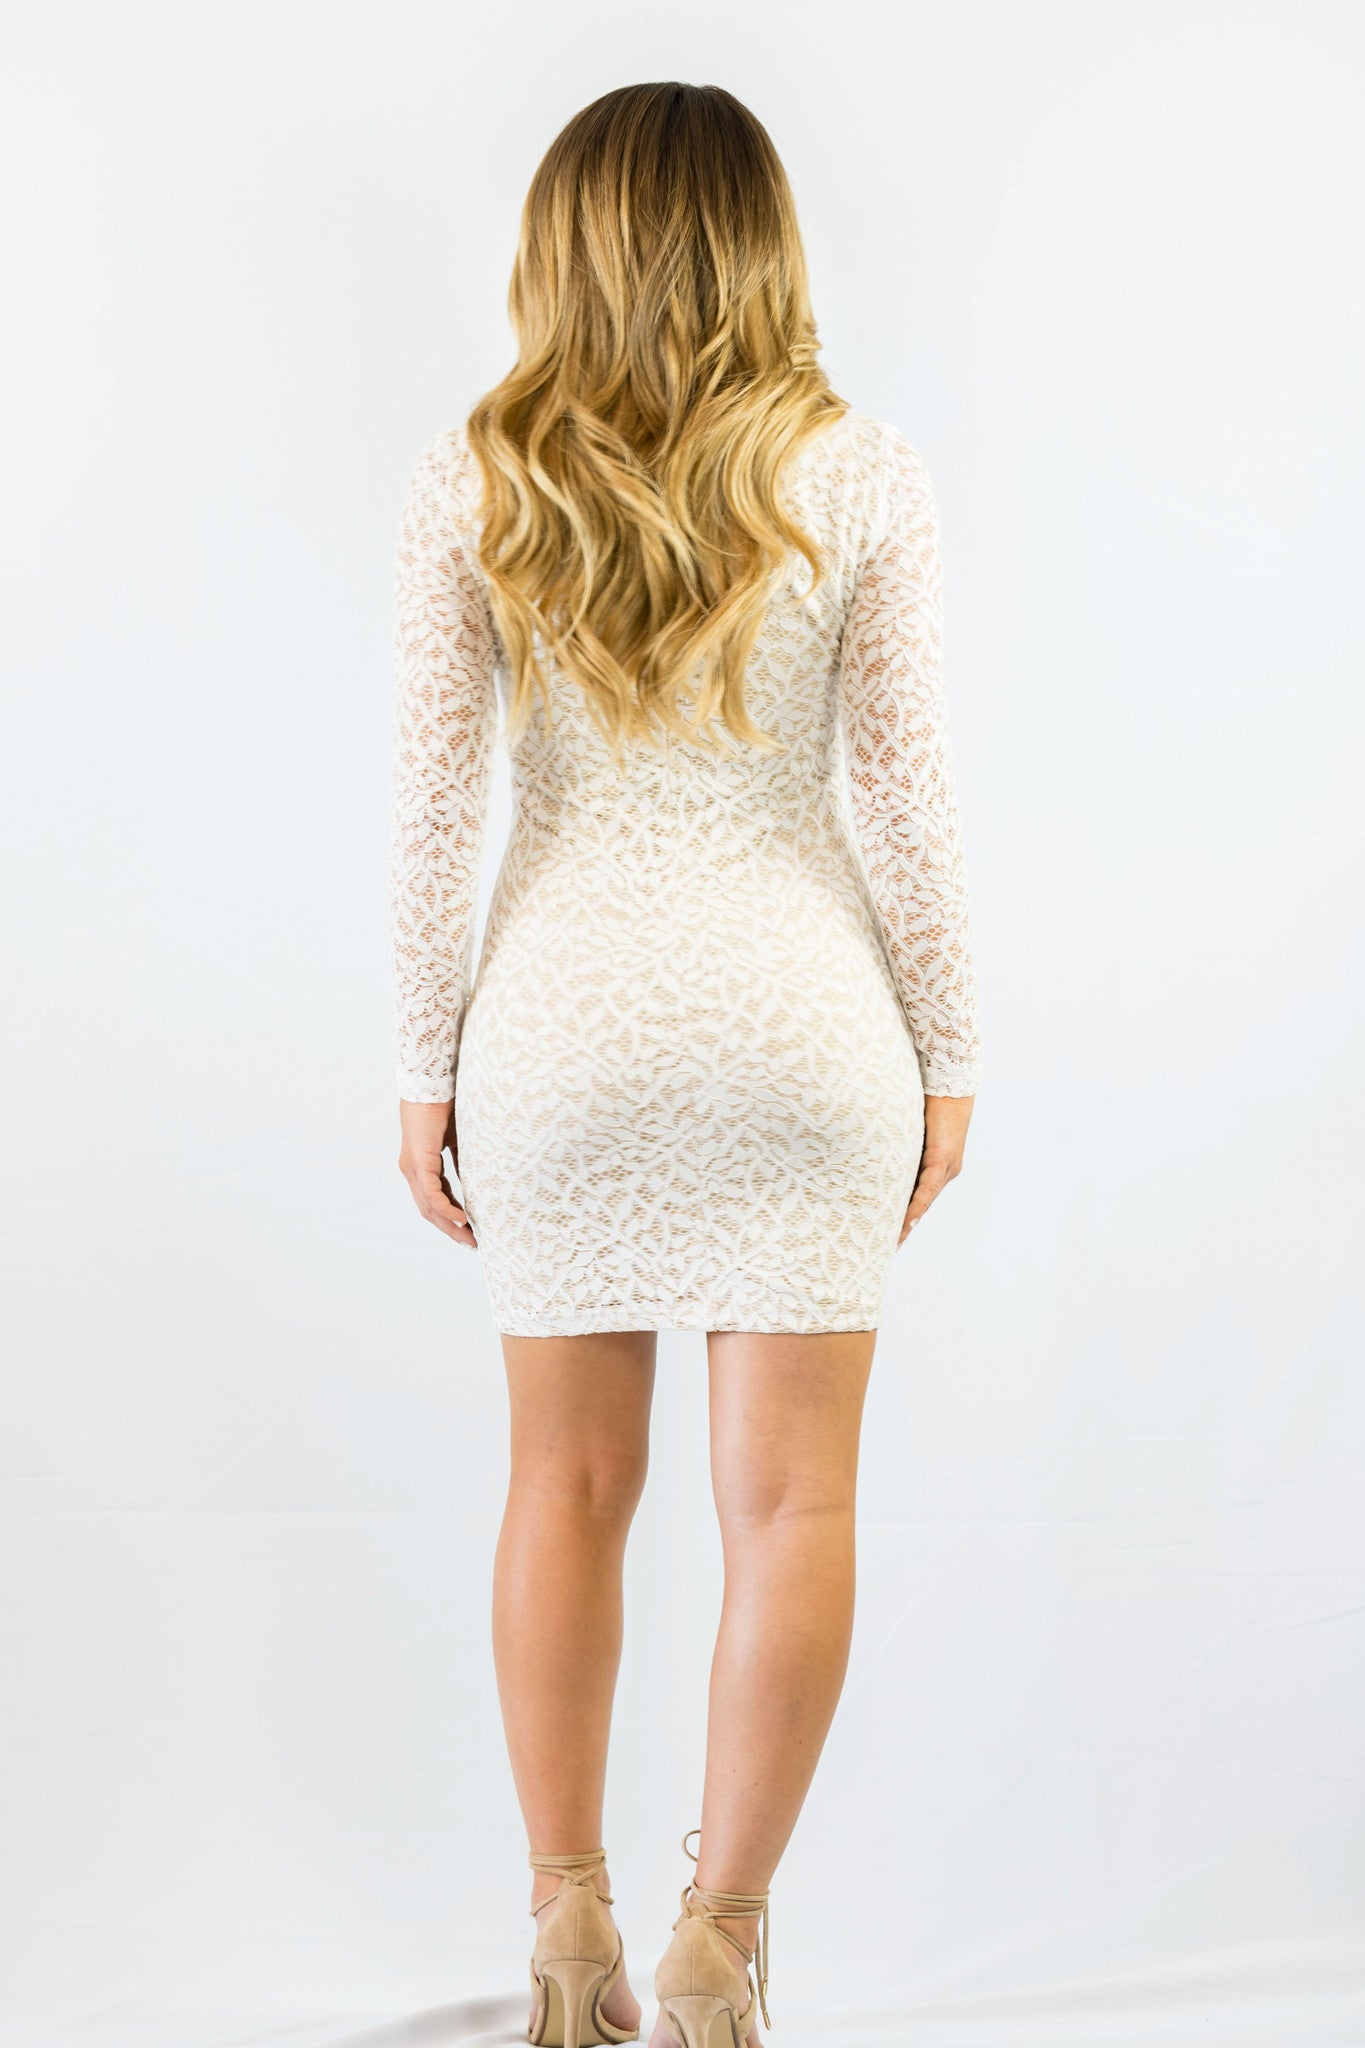 WYLDR In Too Deep Ivory Lace Bodycon Dress White - DRESSES - WYLDR - Free Vibrationz - 5